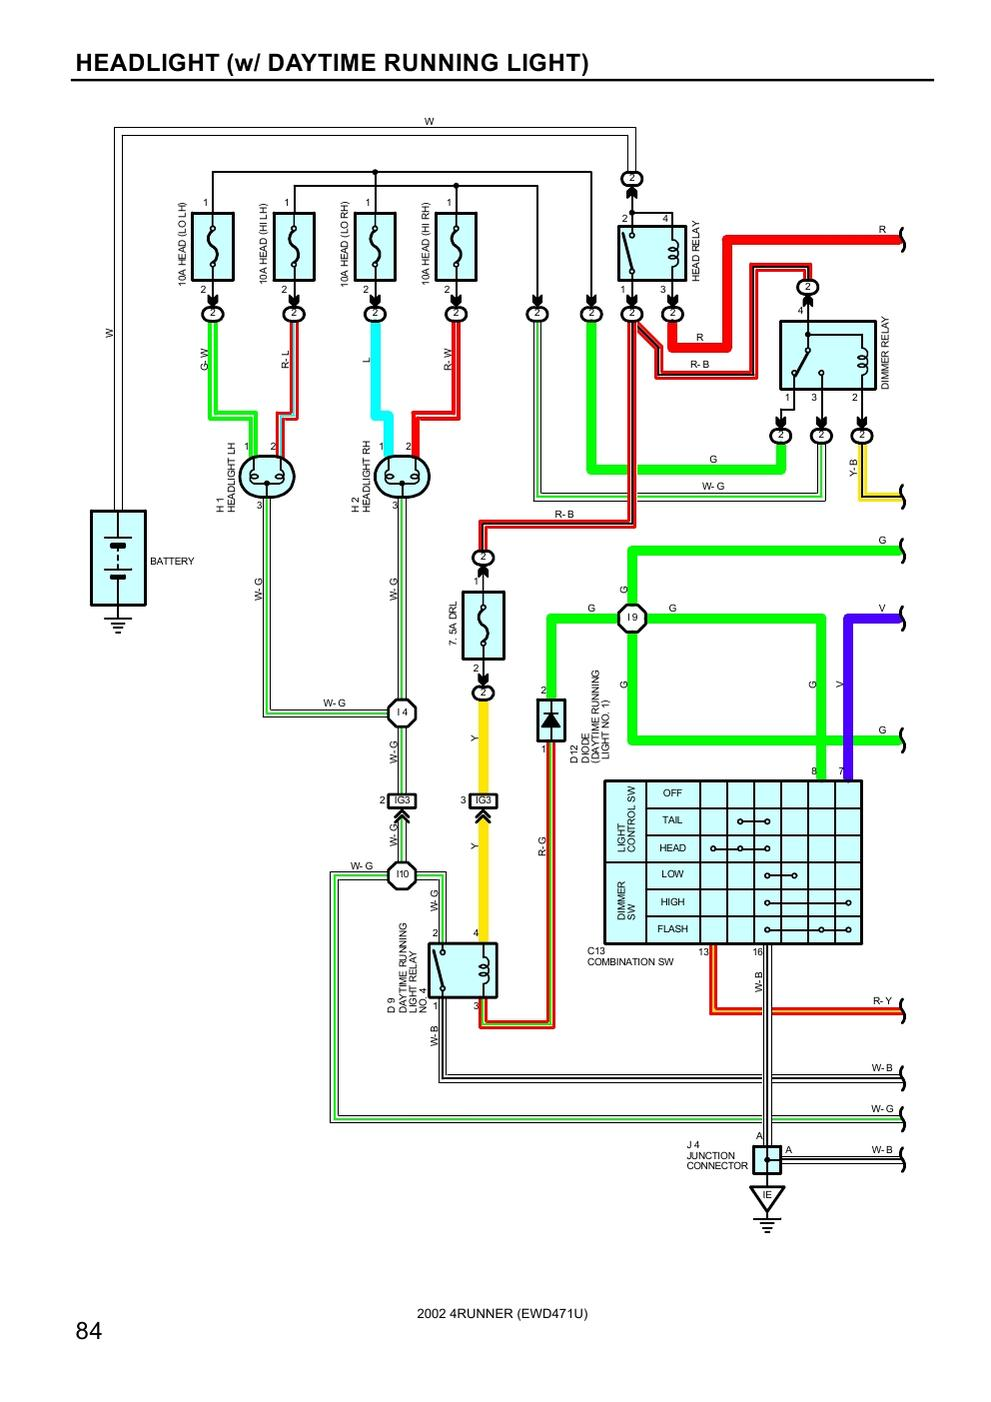 Toyota Headlight Switch Wiring Diagram : Toyota runner wiring diagram get free image about